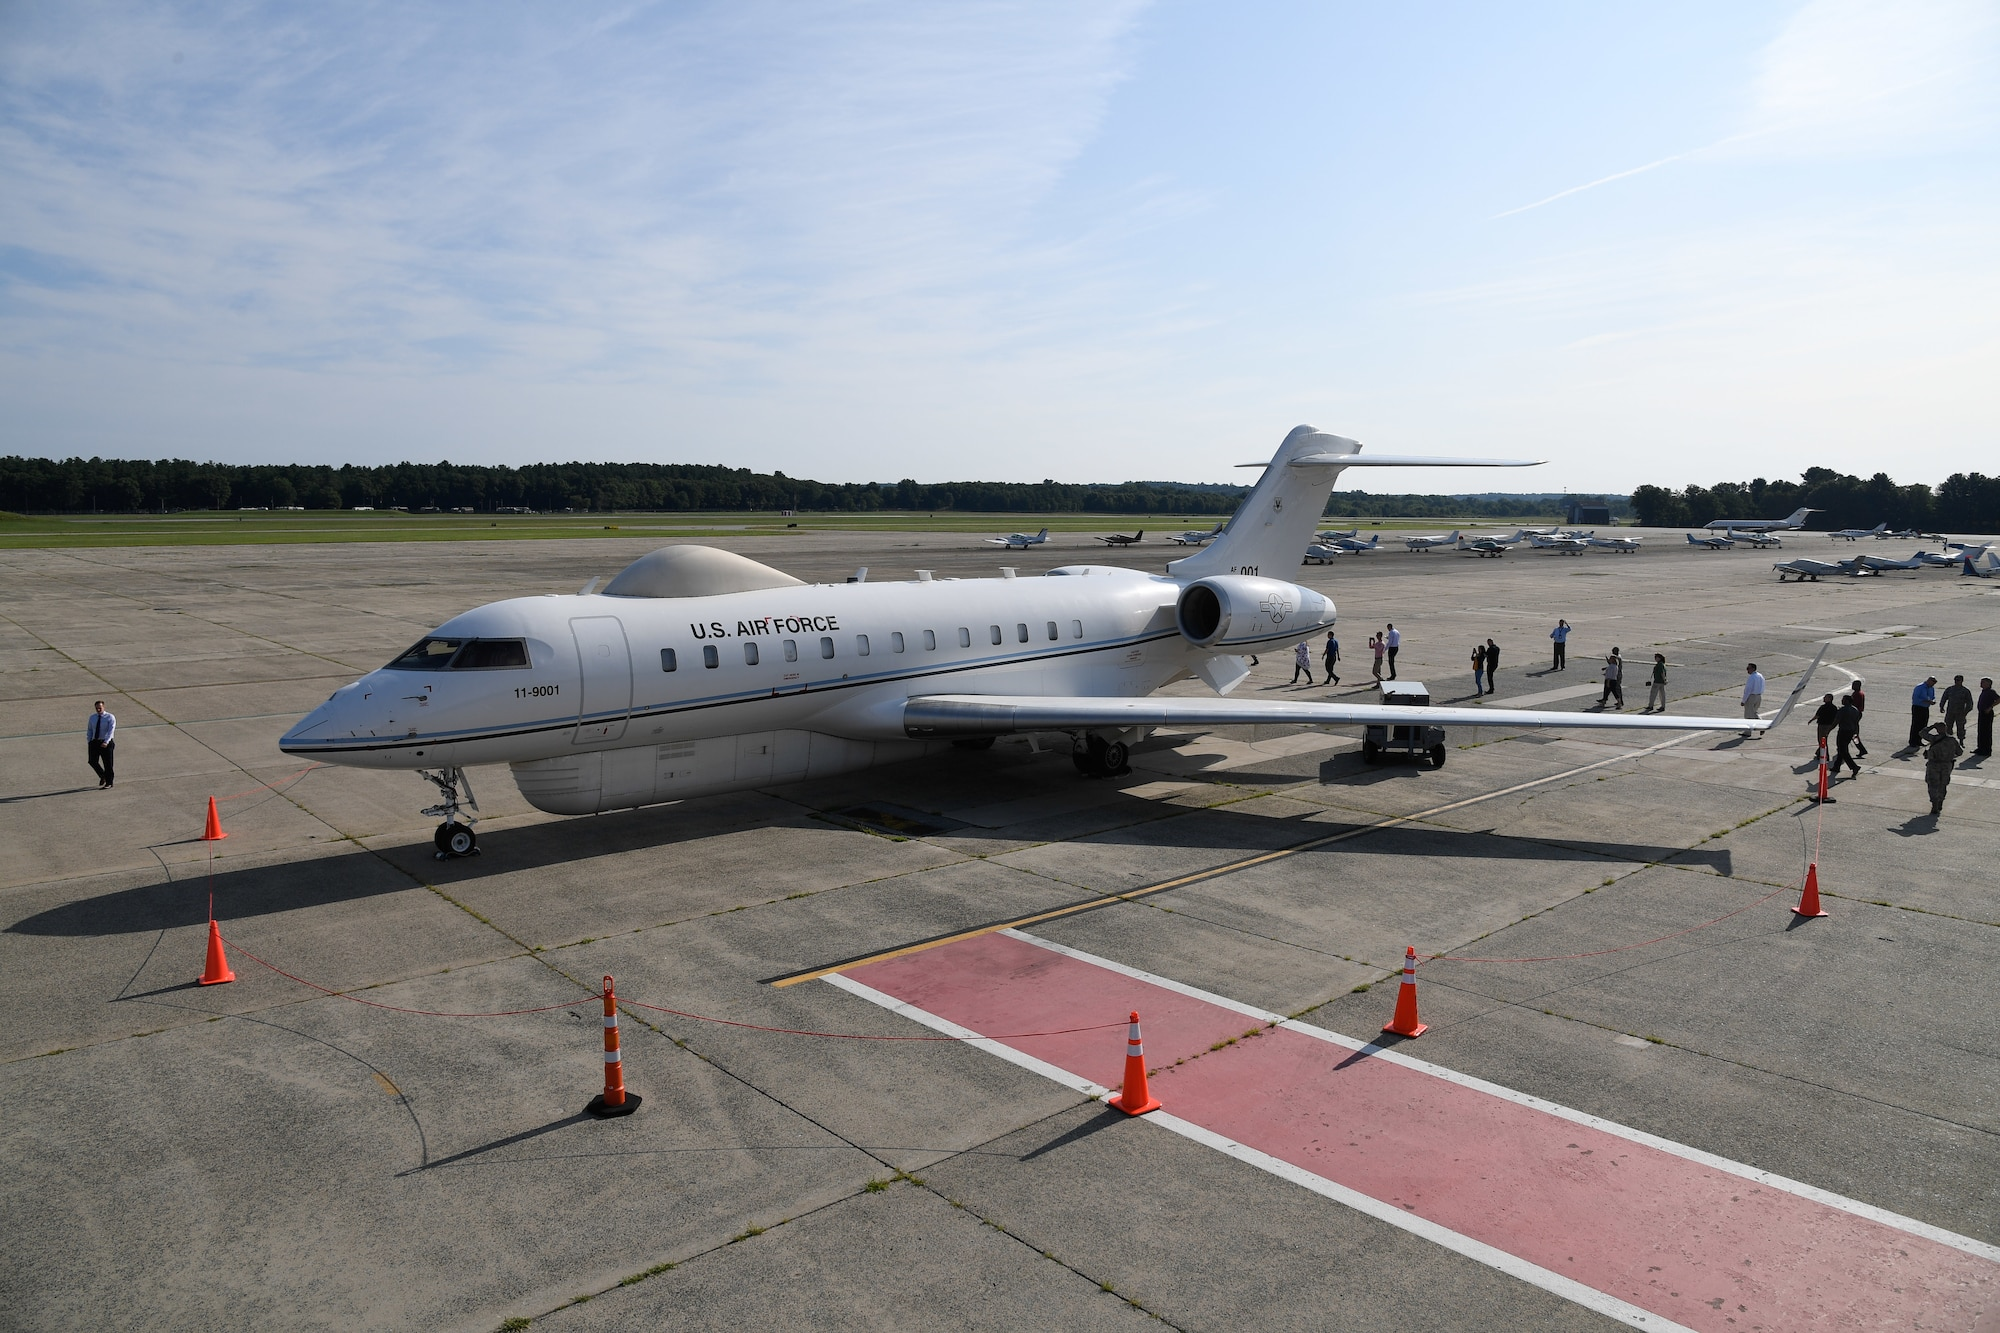 A Battlefield Airborne Communications Node-equipped E-11A aircraft rolls out on the flightline at Hanscom Air Force Base, Mass., in July 2018. On June 1, 2021, the BACN program office at Hanscom AFB awarded a $464.8 million contract to Learjet, Inc., a U.S. subsidiary of the Specialized Aircraft Division of Bombardier Inc., for up to six Bombardier Global 6000 aircraft with a five-year delivery period.